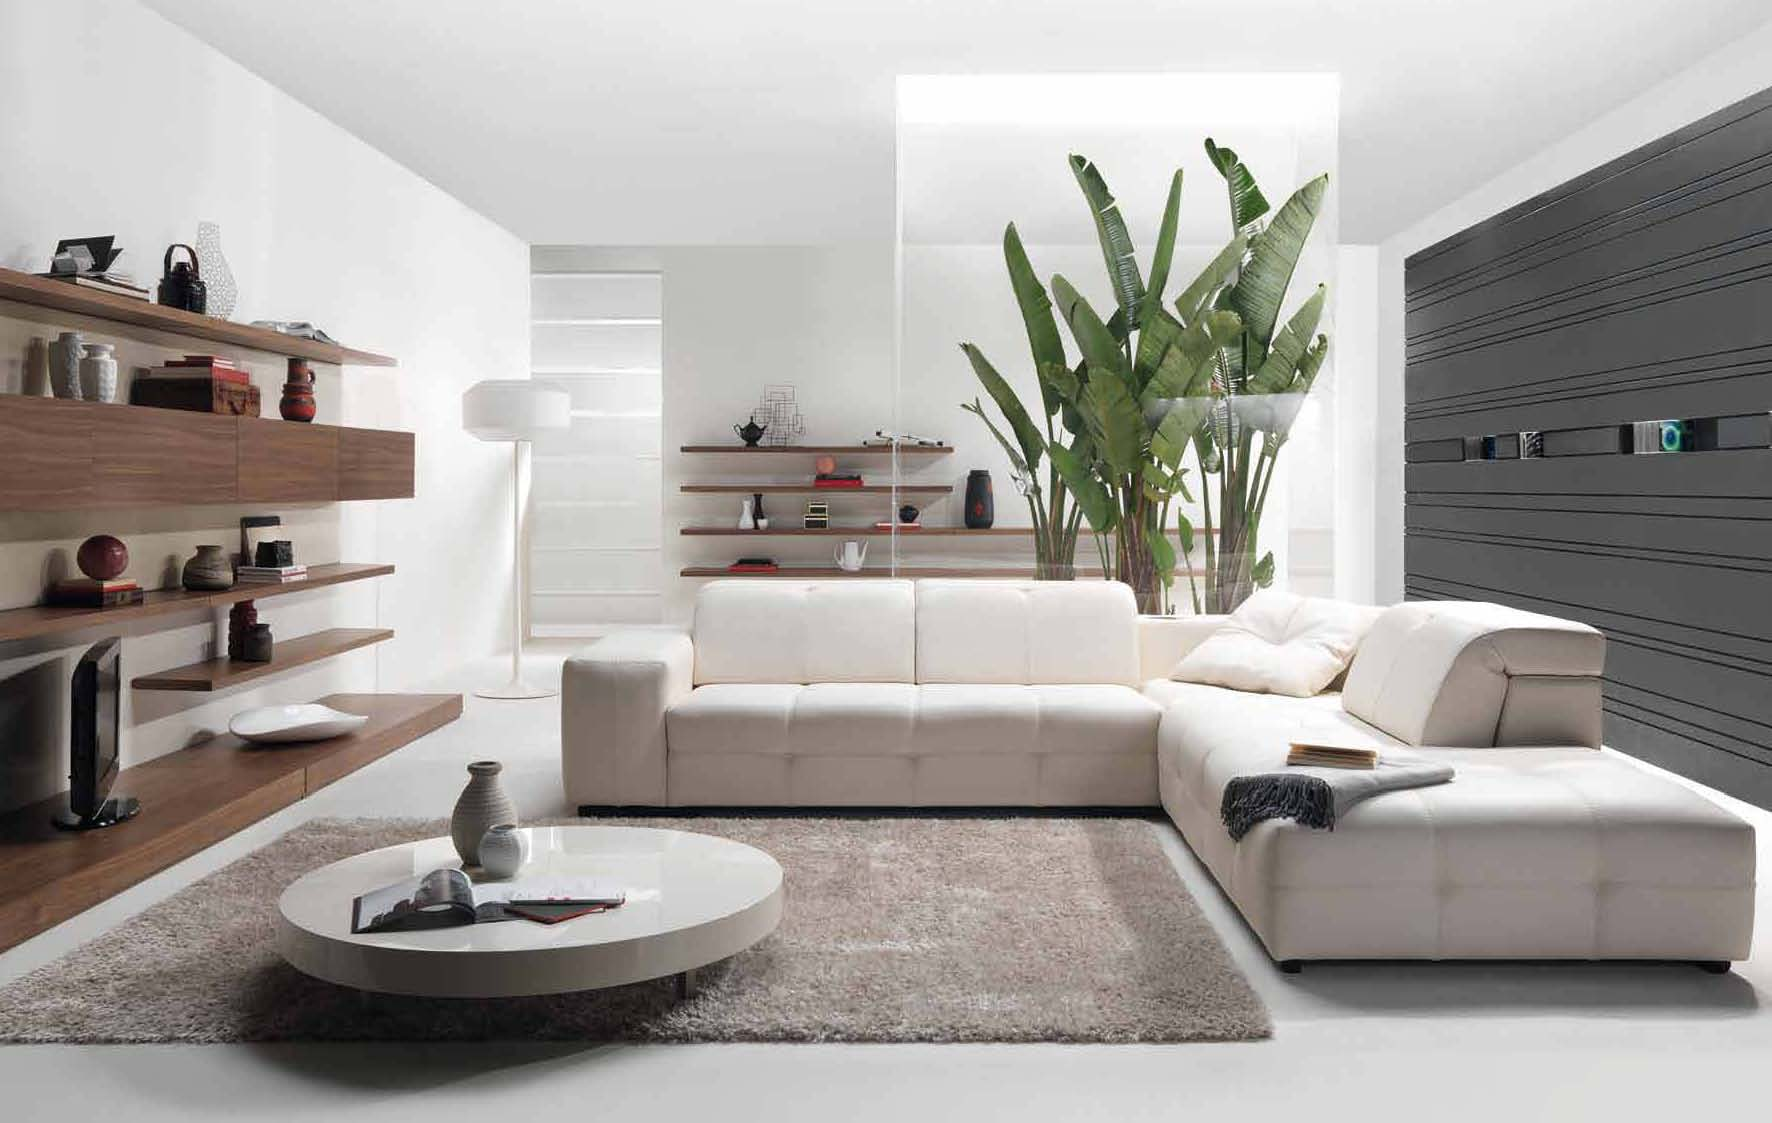 Living room styles 2010 by natuzzi for Sitting room styles